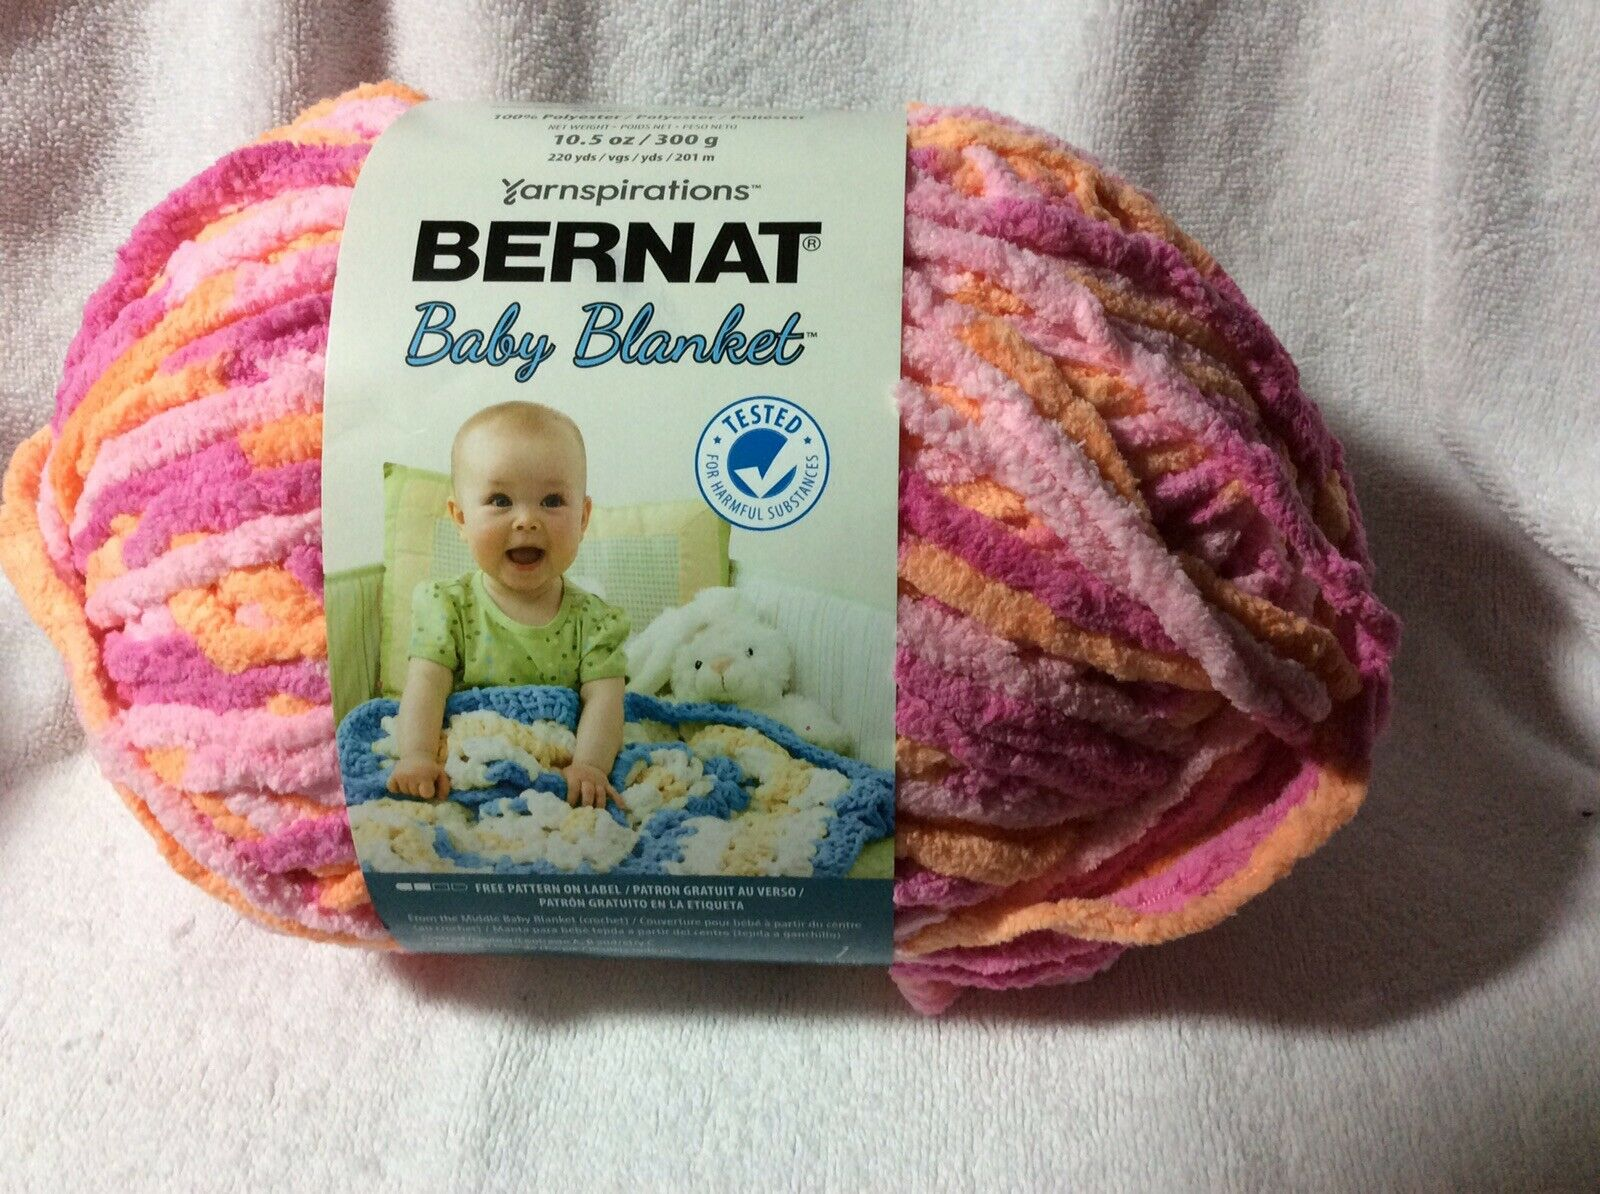 Bernat Baby Blanket Yarn 10 5oz Skein Color Peachy For Sale Online